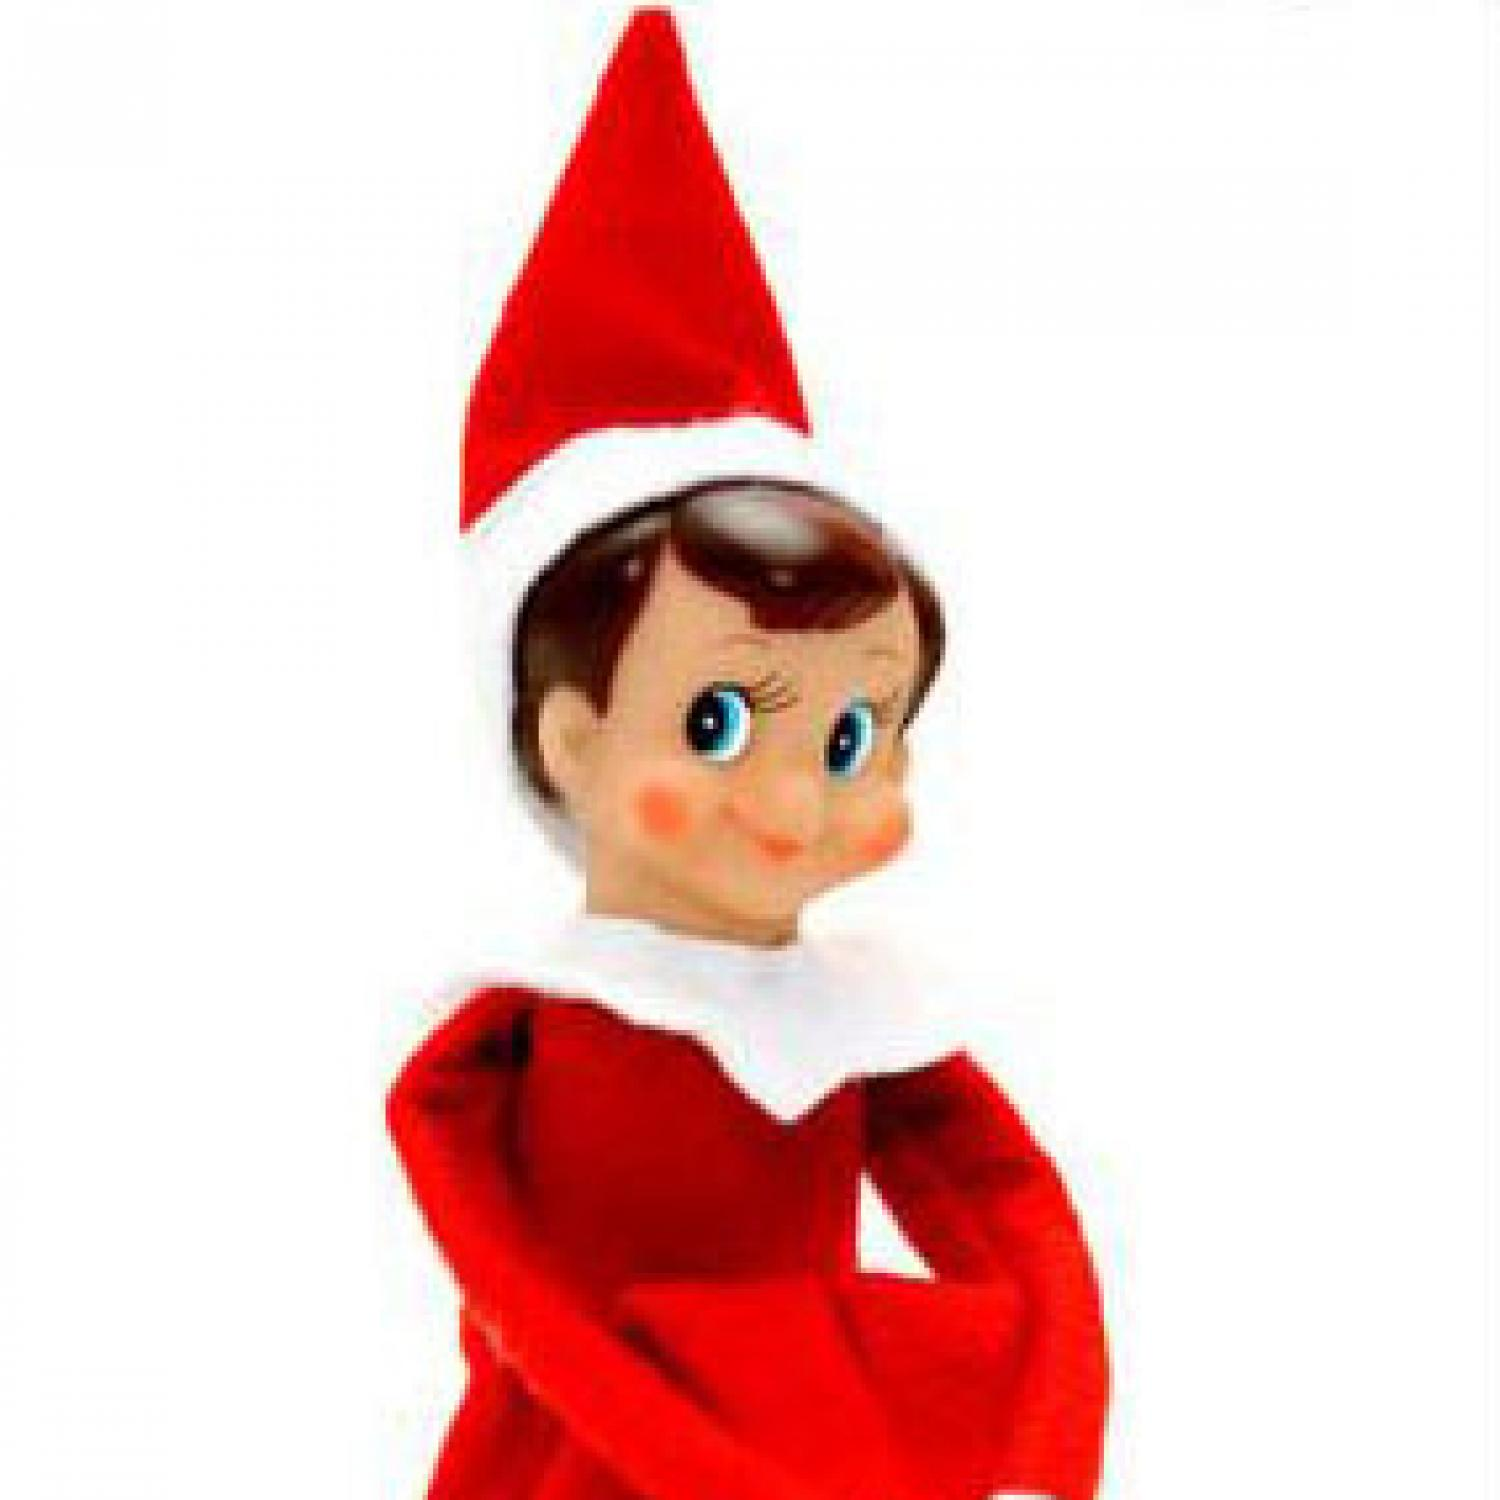 Fun with the Elf on the Shelf | Parenting